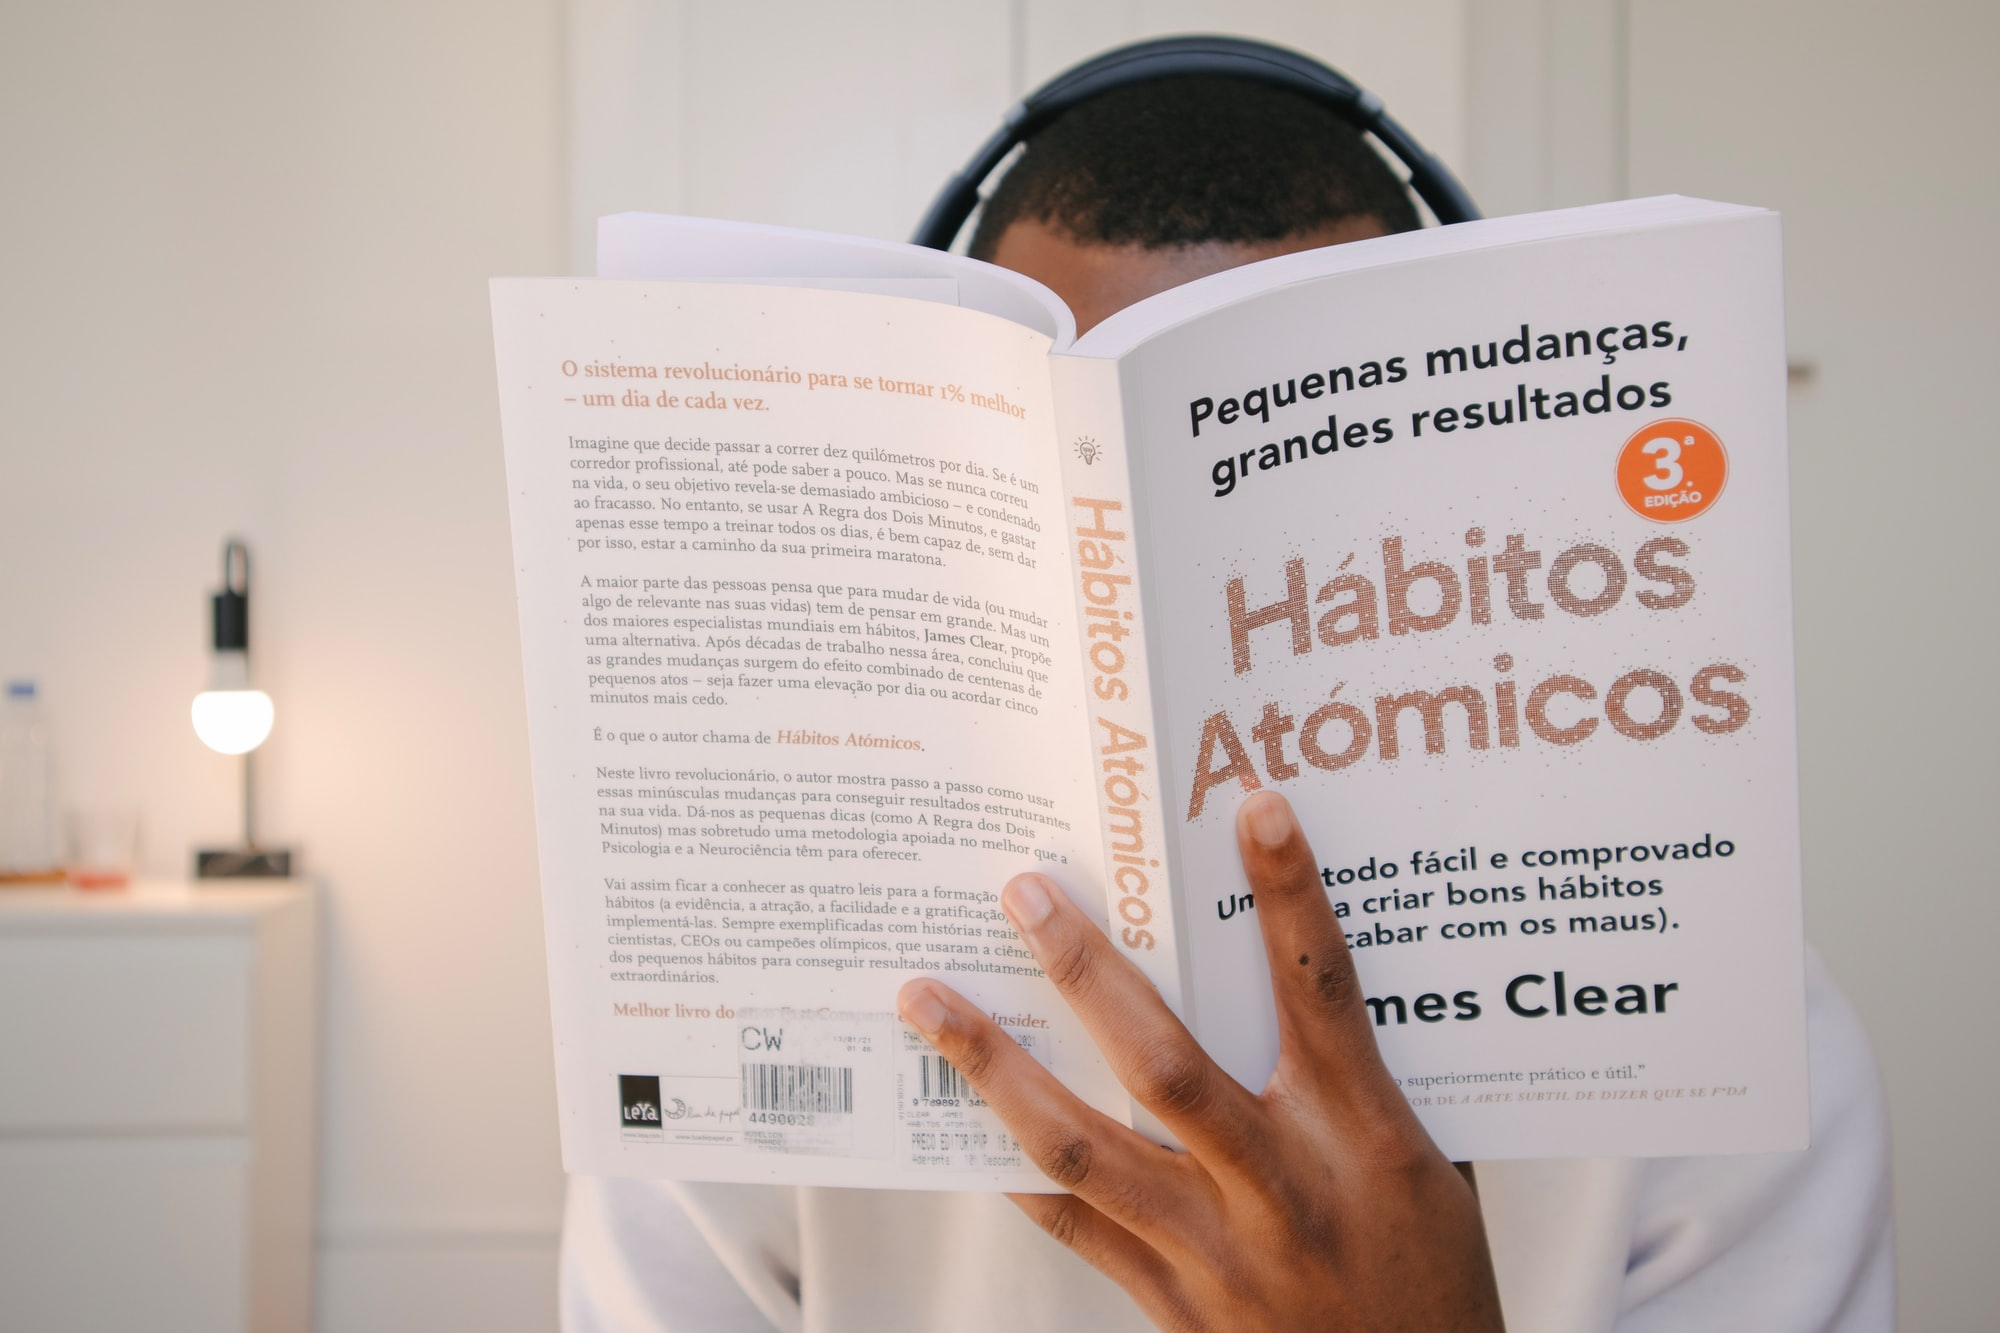 Atomic Habits (James Clear)